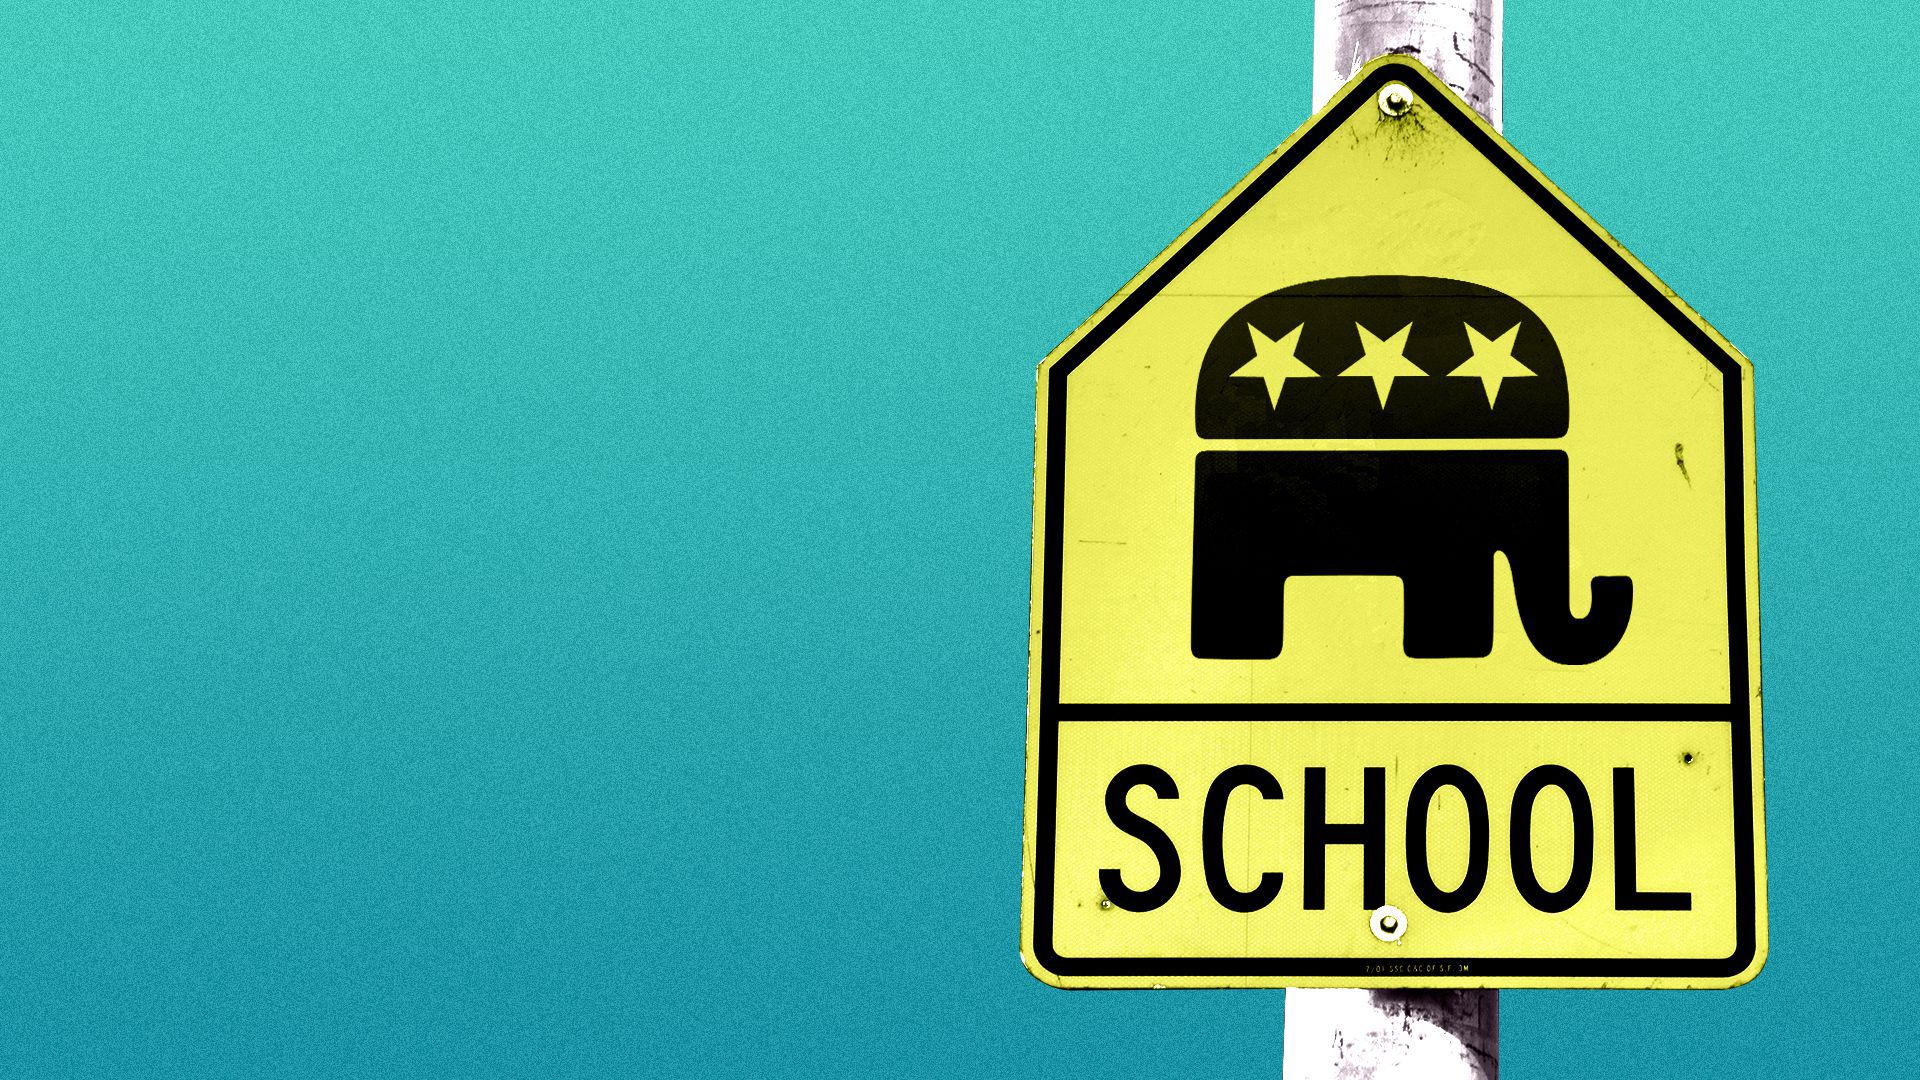 Illustration of a school street sign with the Republican Party logo on instead of icons of children.